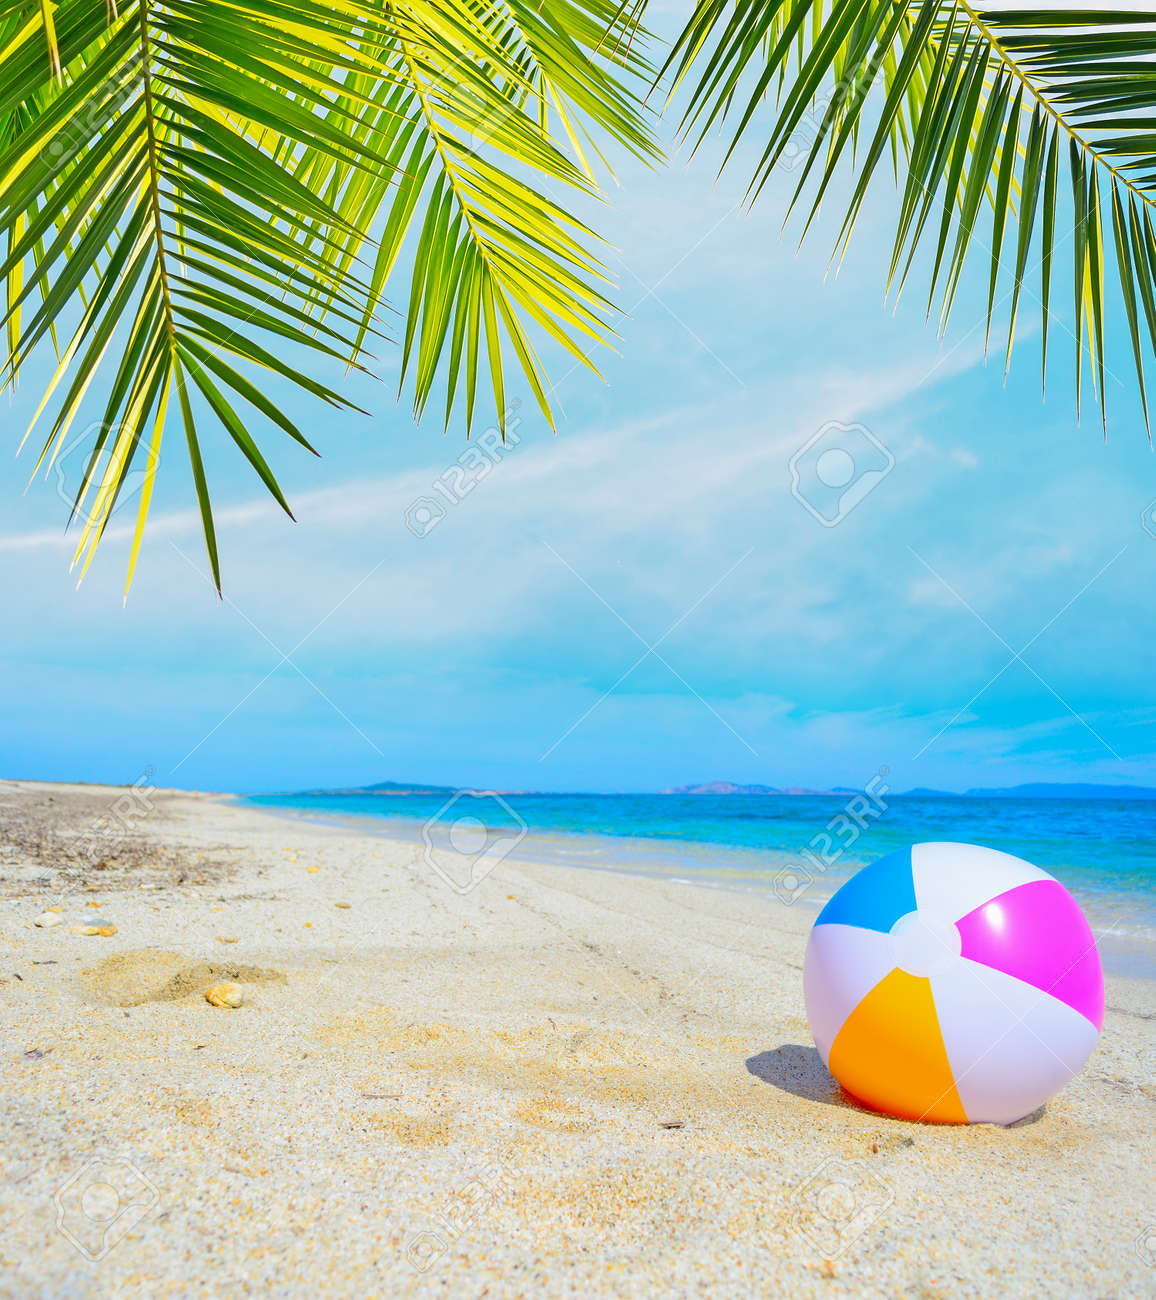 colorful ball under a palm tree by the shore - 42466192